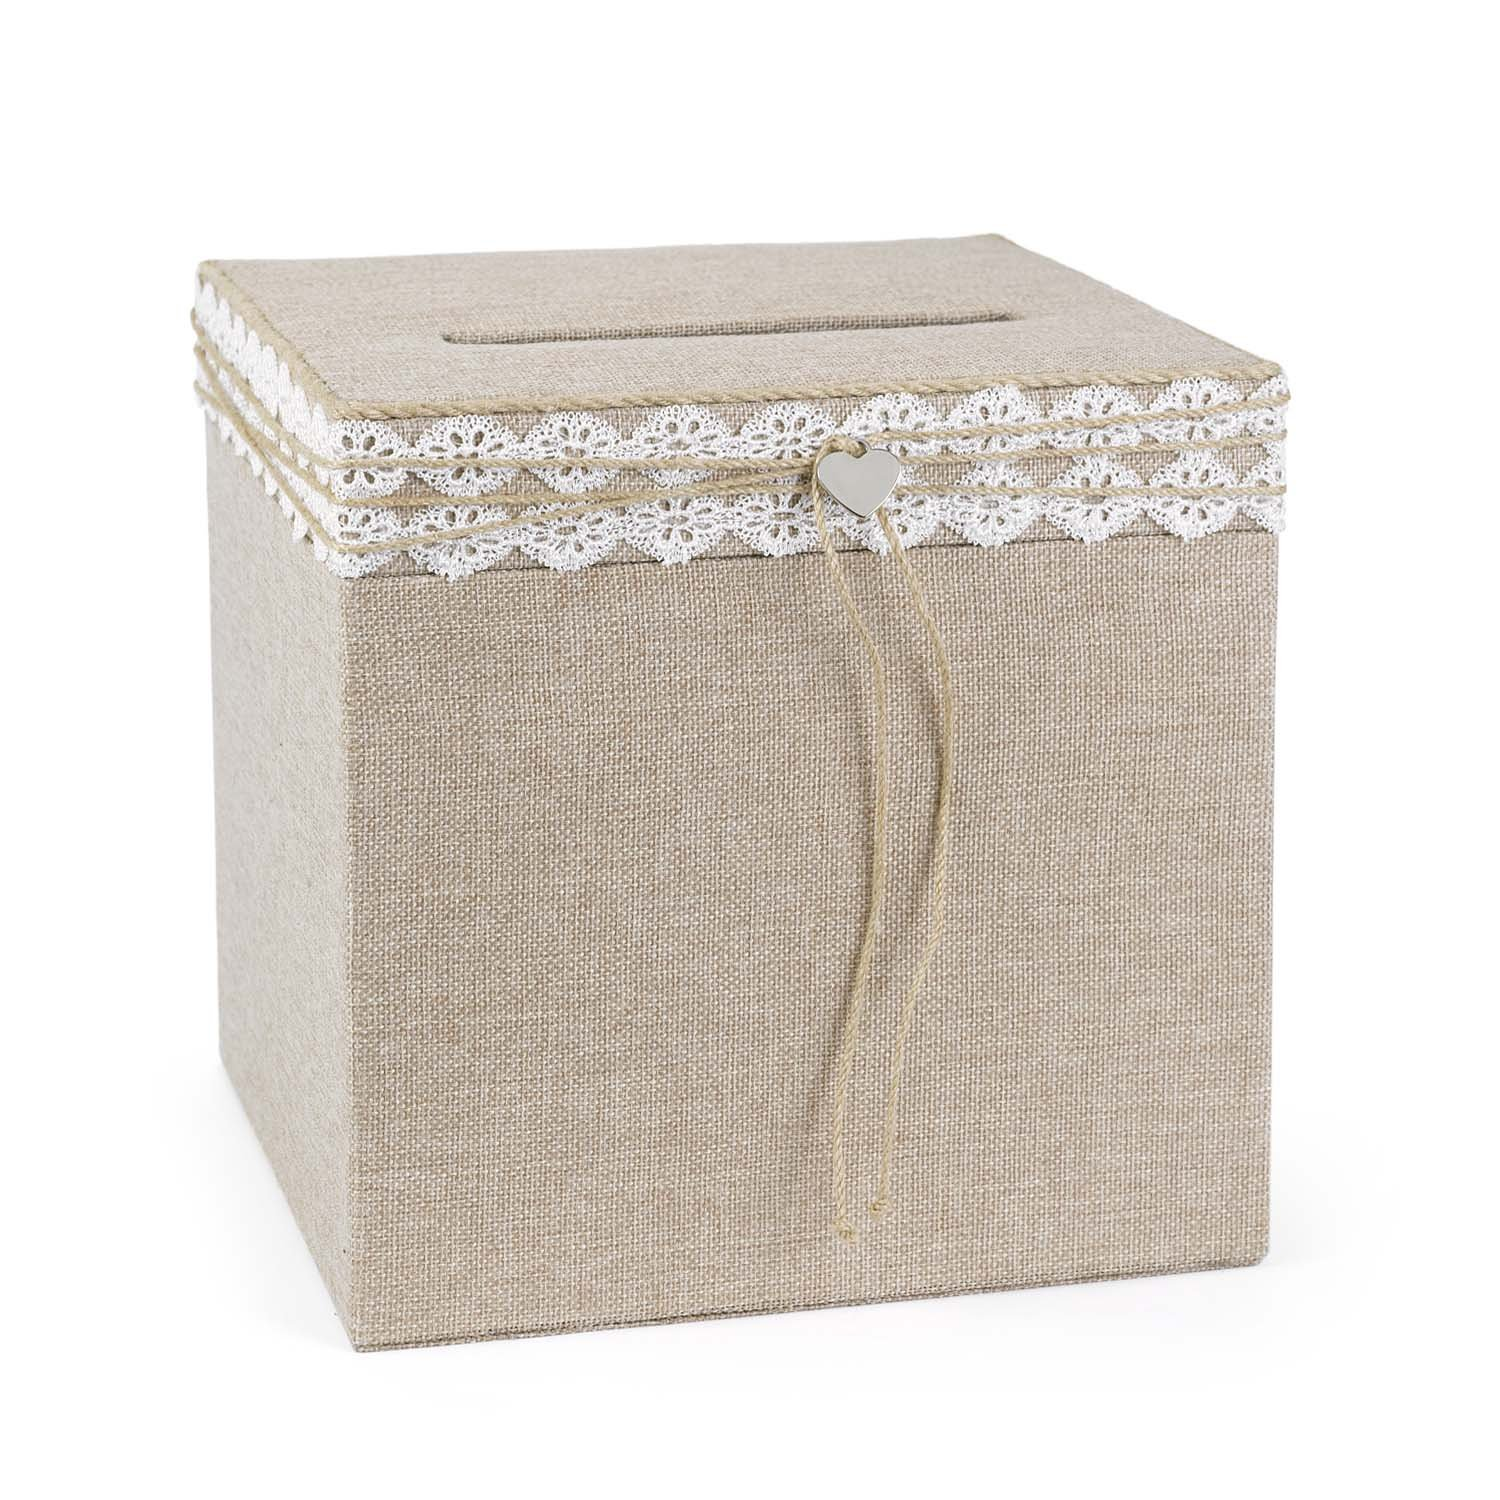 Hortense B. Hewitt 24390 Wedding Accessories Rustic Romance Card Box, Natural